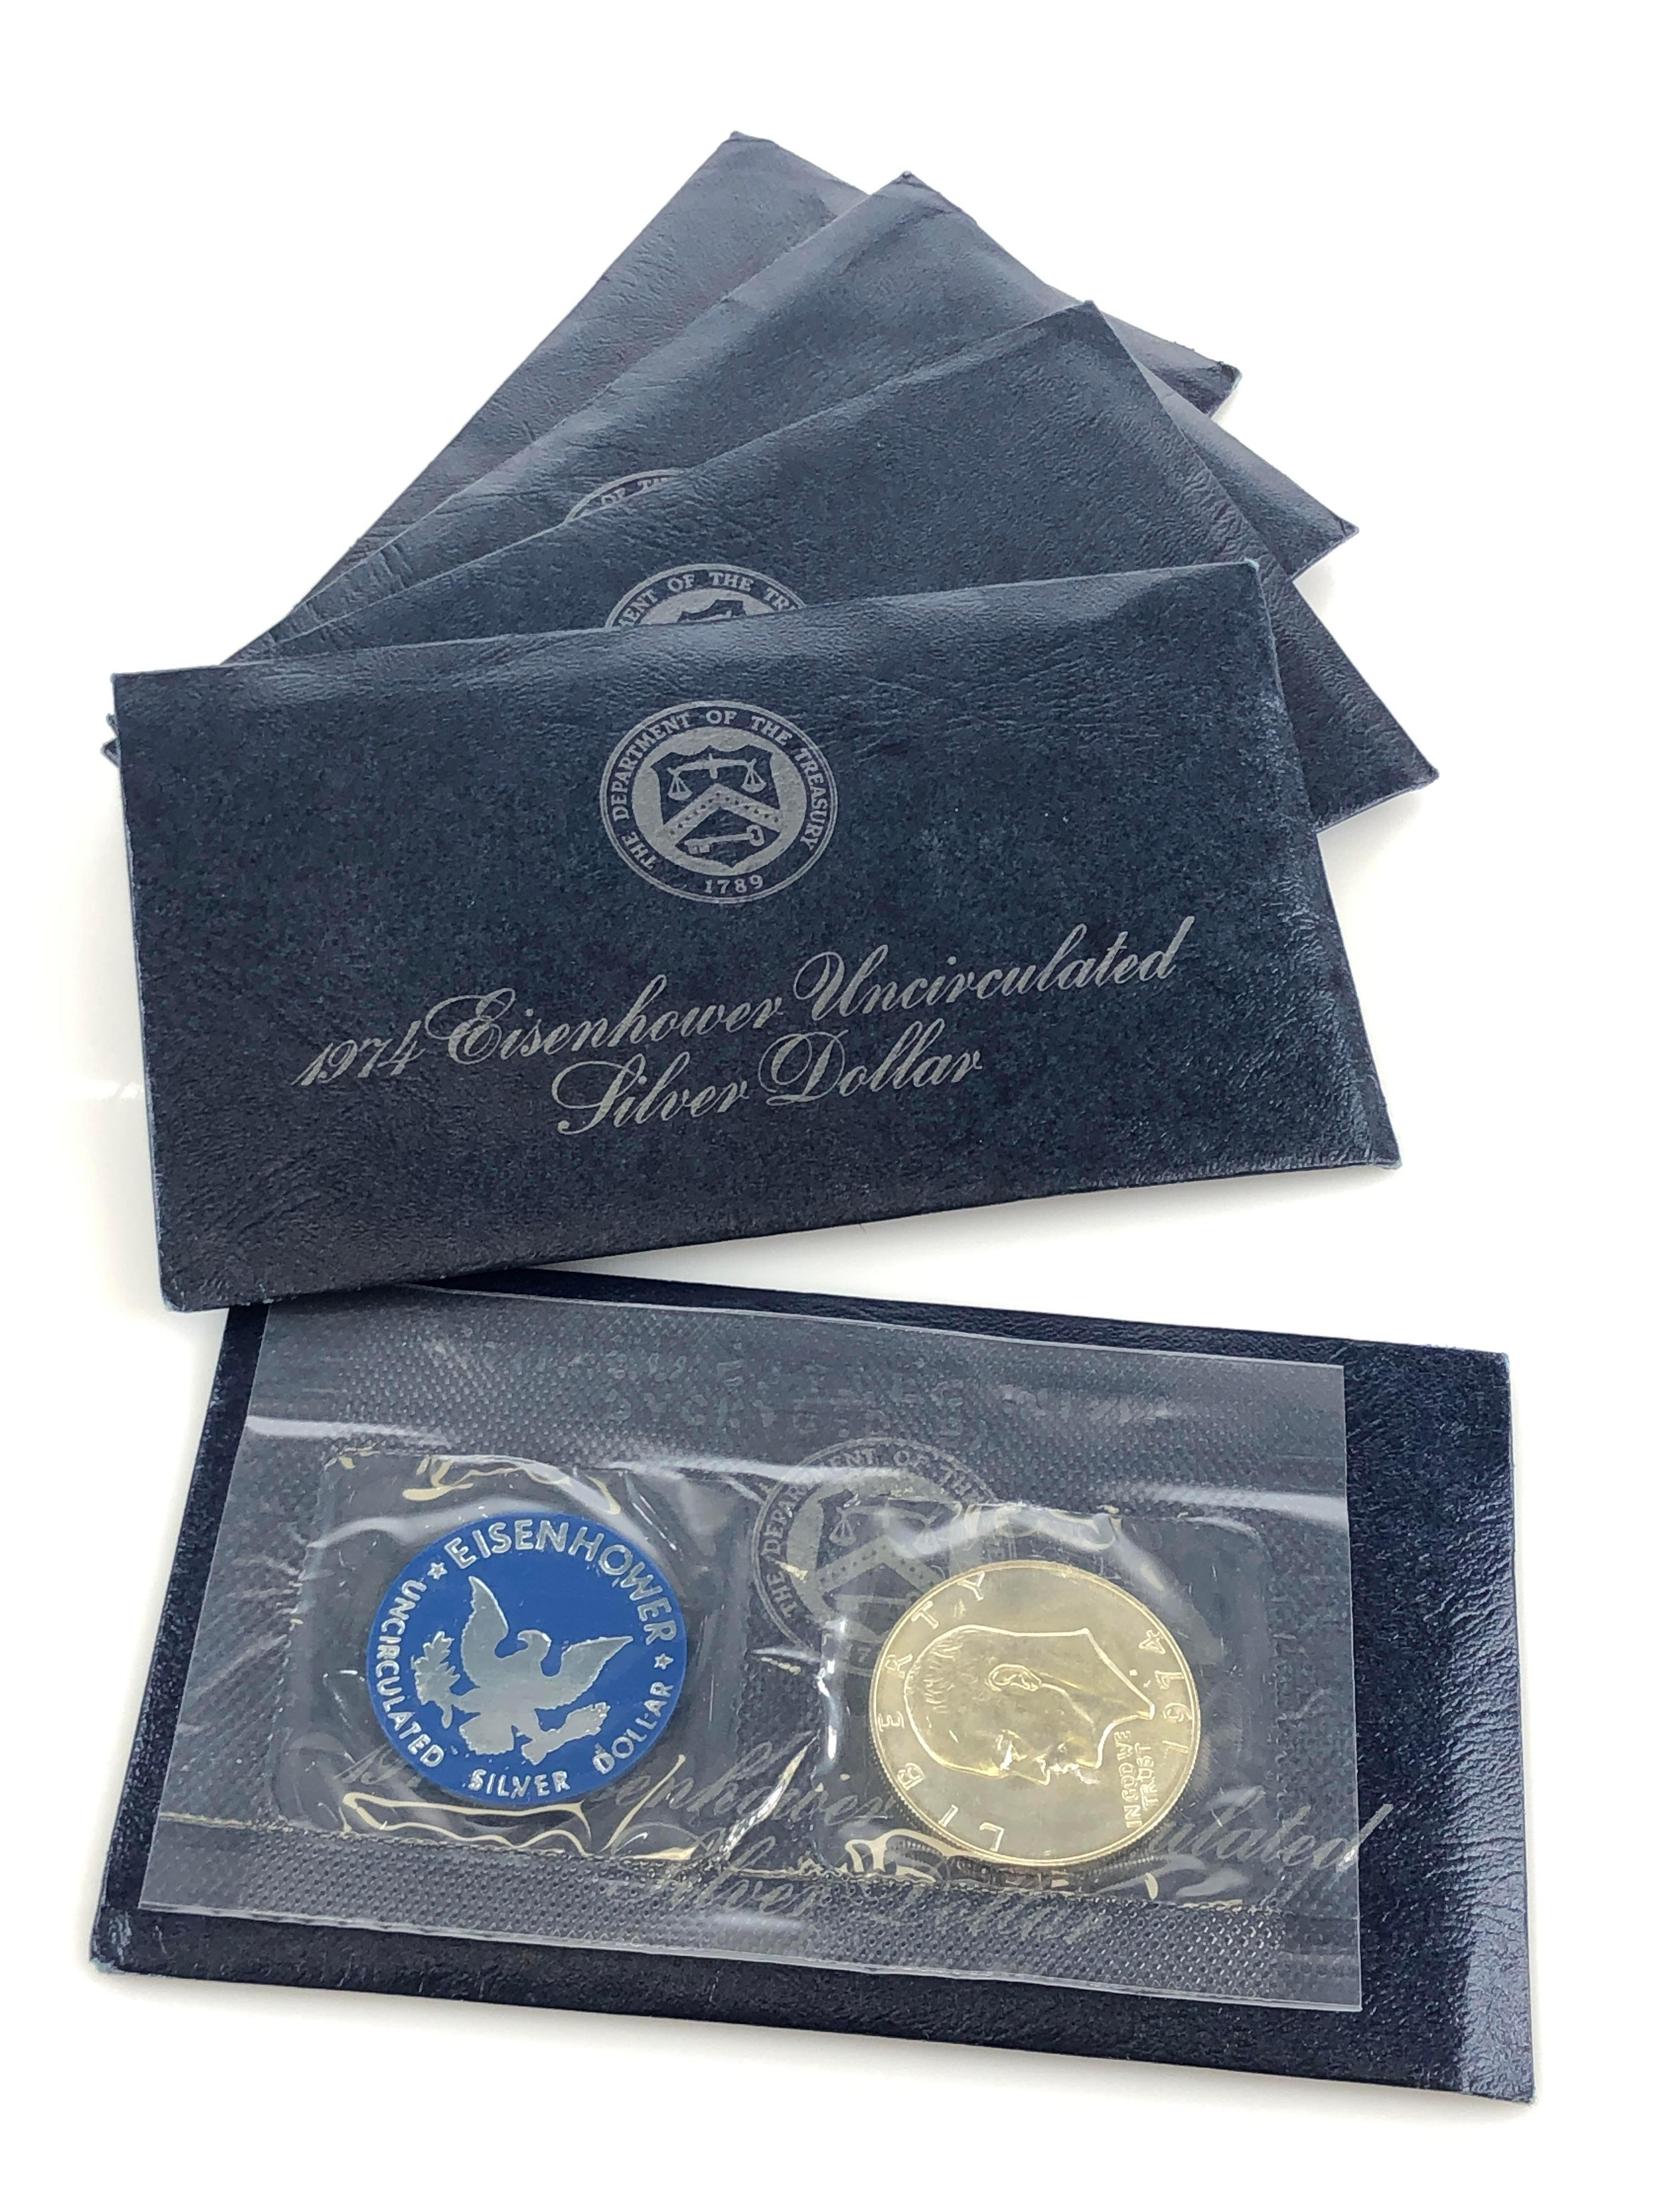 5PC 1974 EISENHOWER SILVER DOLLARS (UNCIRCULATED)